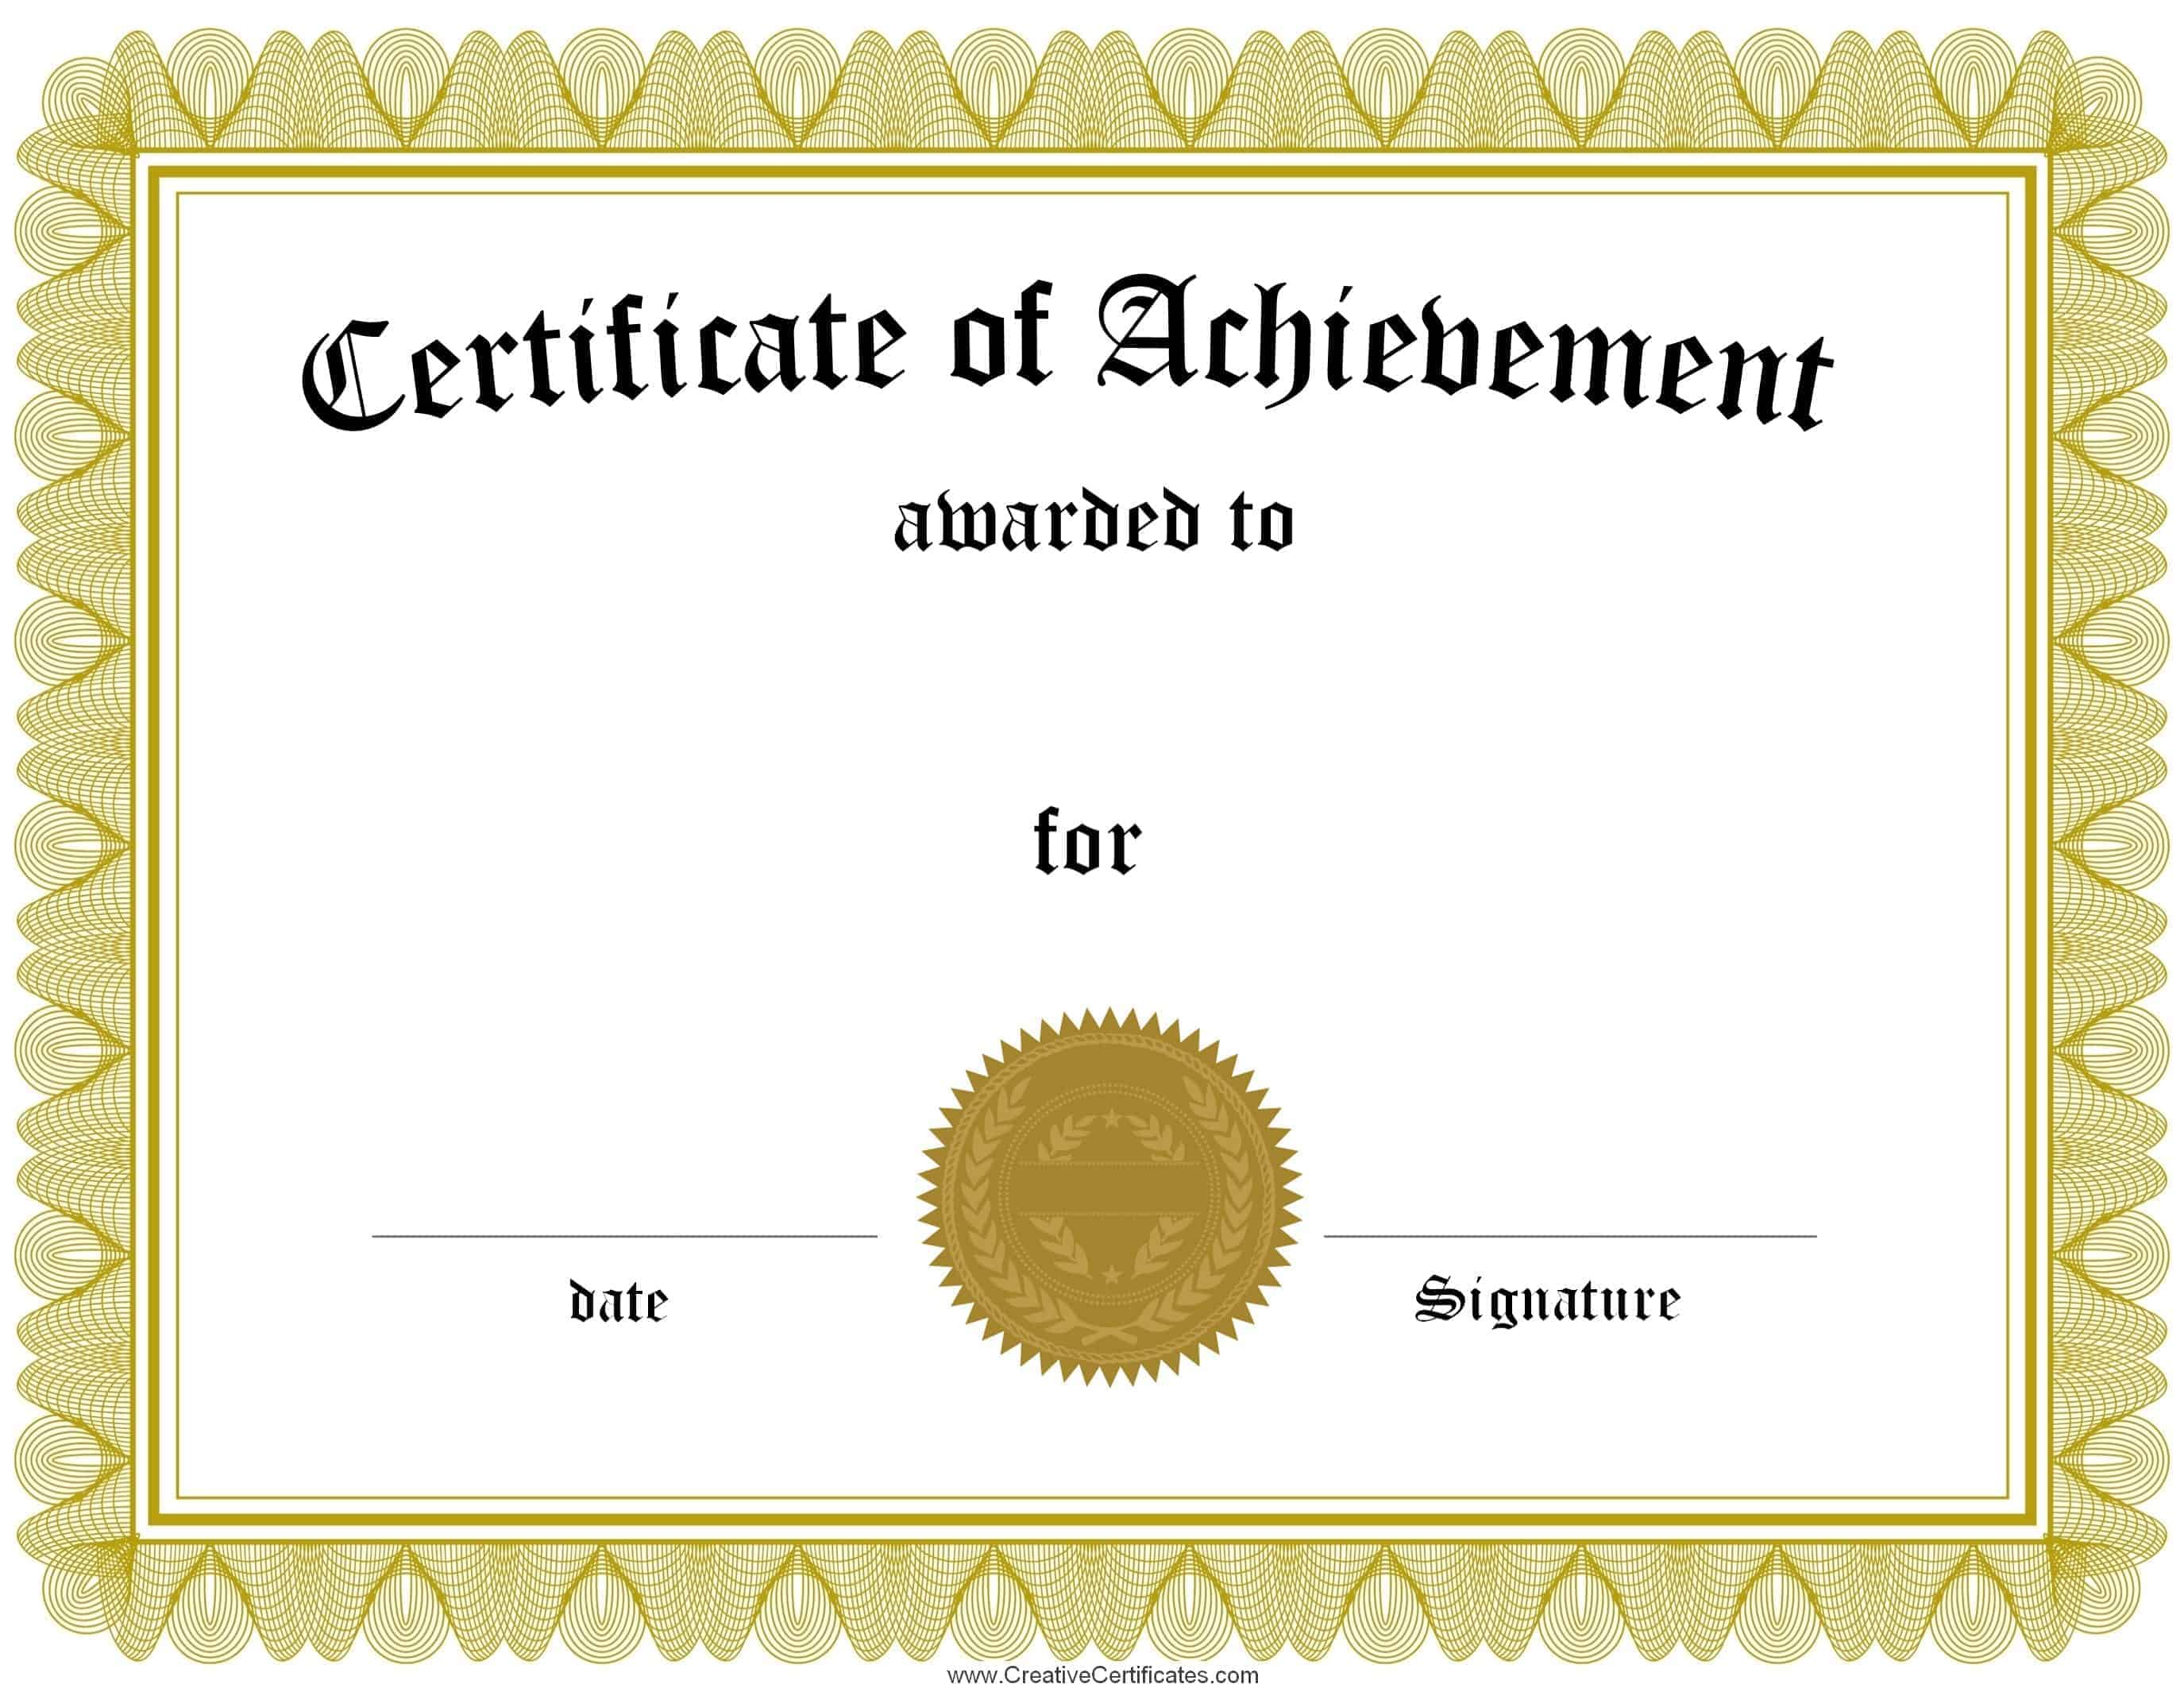 Free Customizable Certificate of Achievement – Blank Award Templates